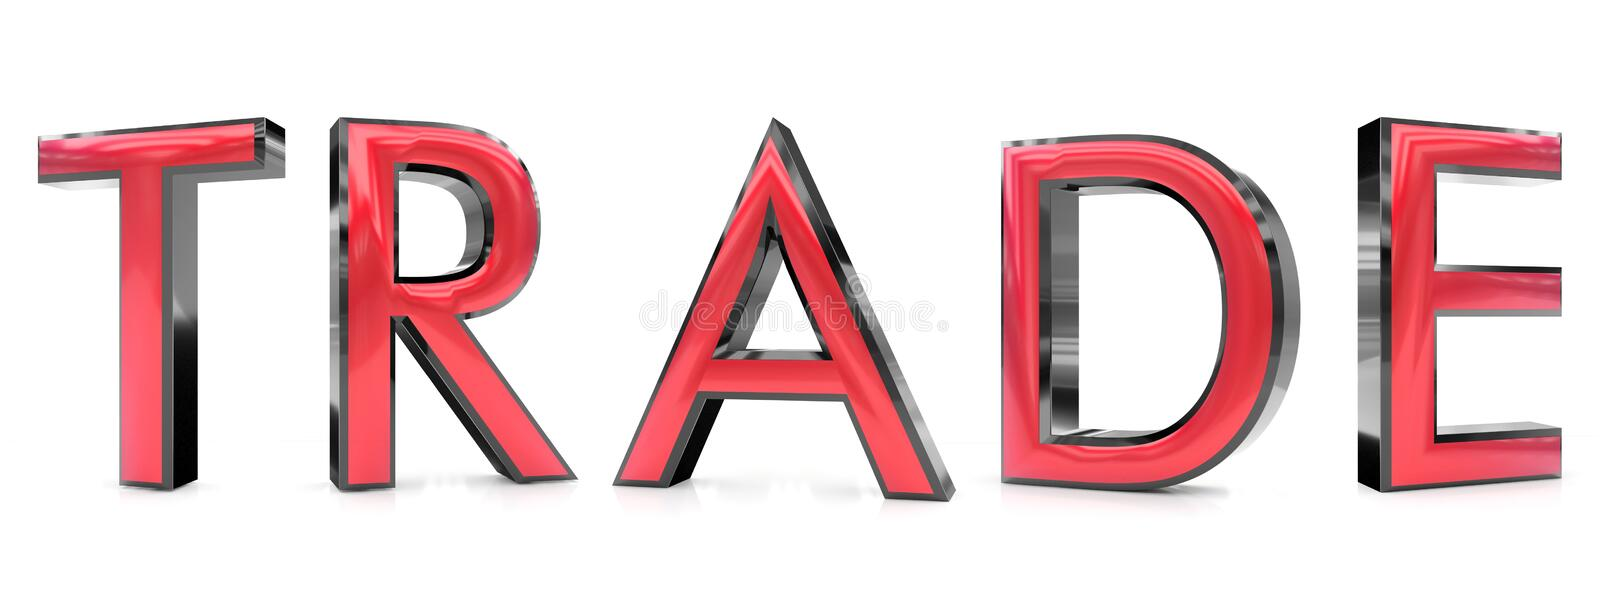 Trade word. The trade word 3d rendered red and gray metallic color , isolated on white background royalty free illustration